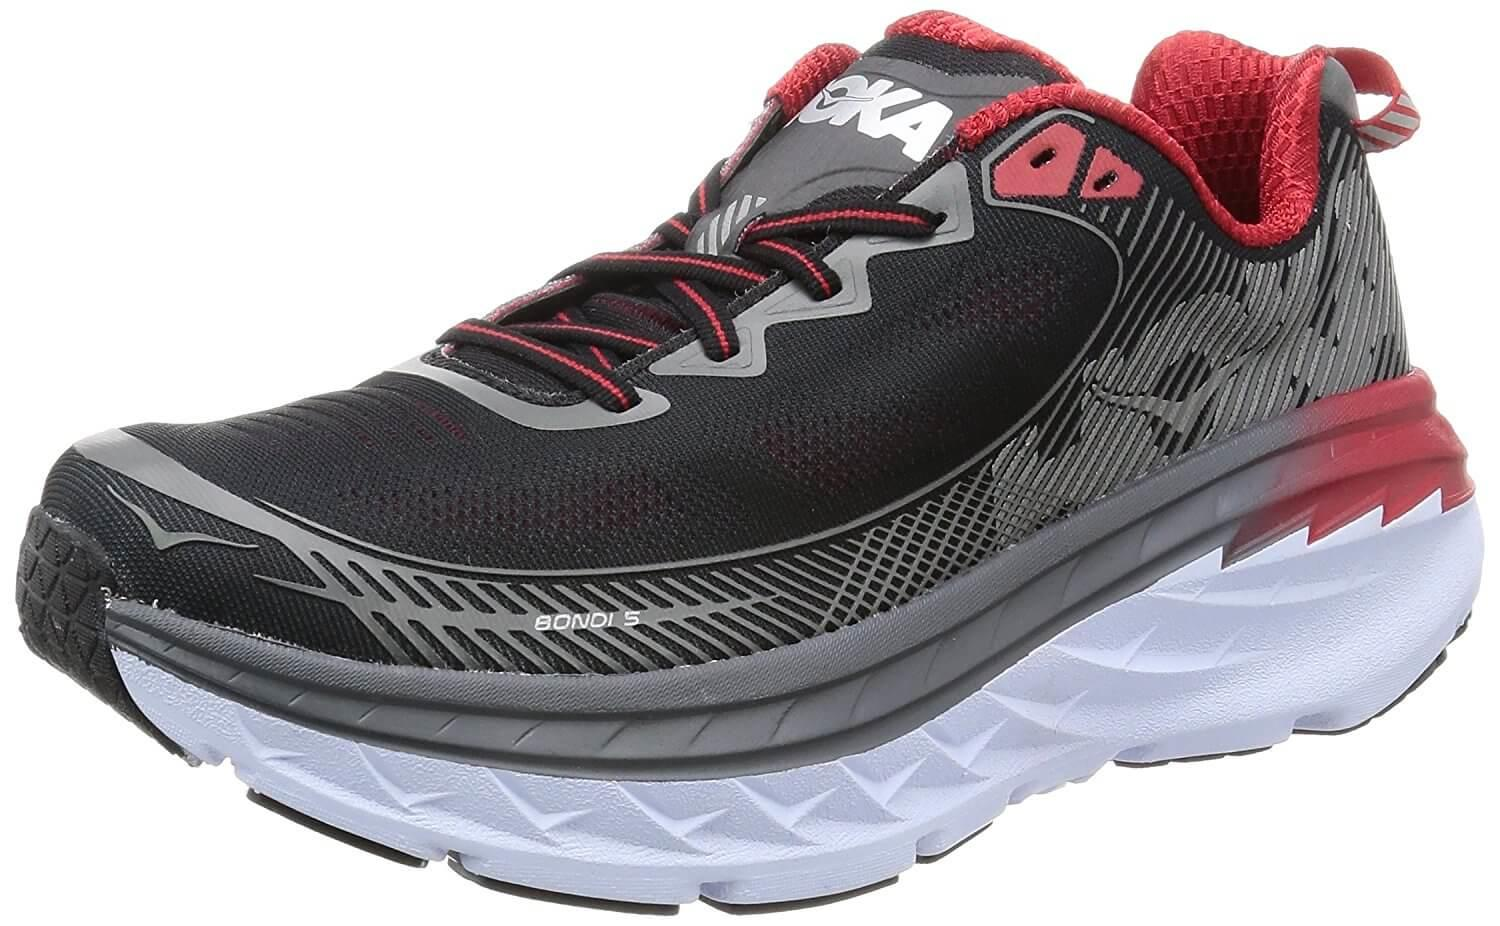 Hoka One One Bondi 5 Reviewed and Fully Compared